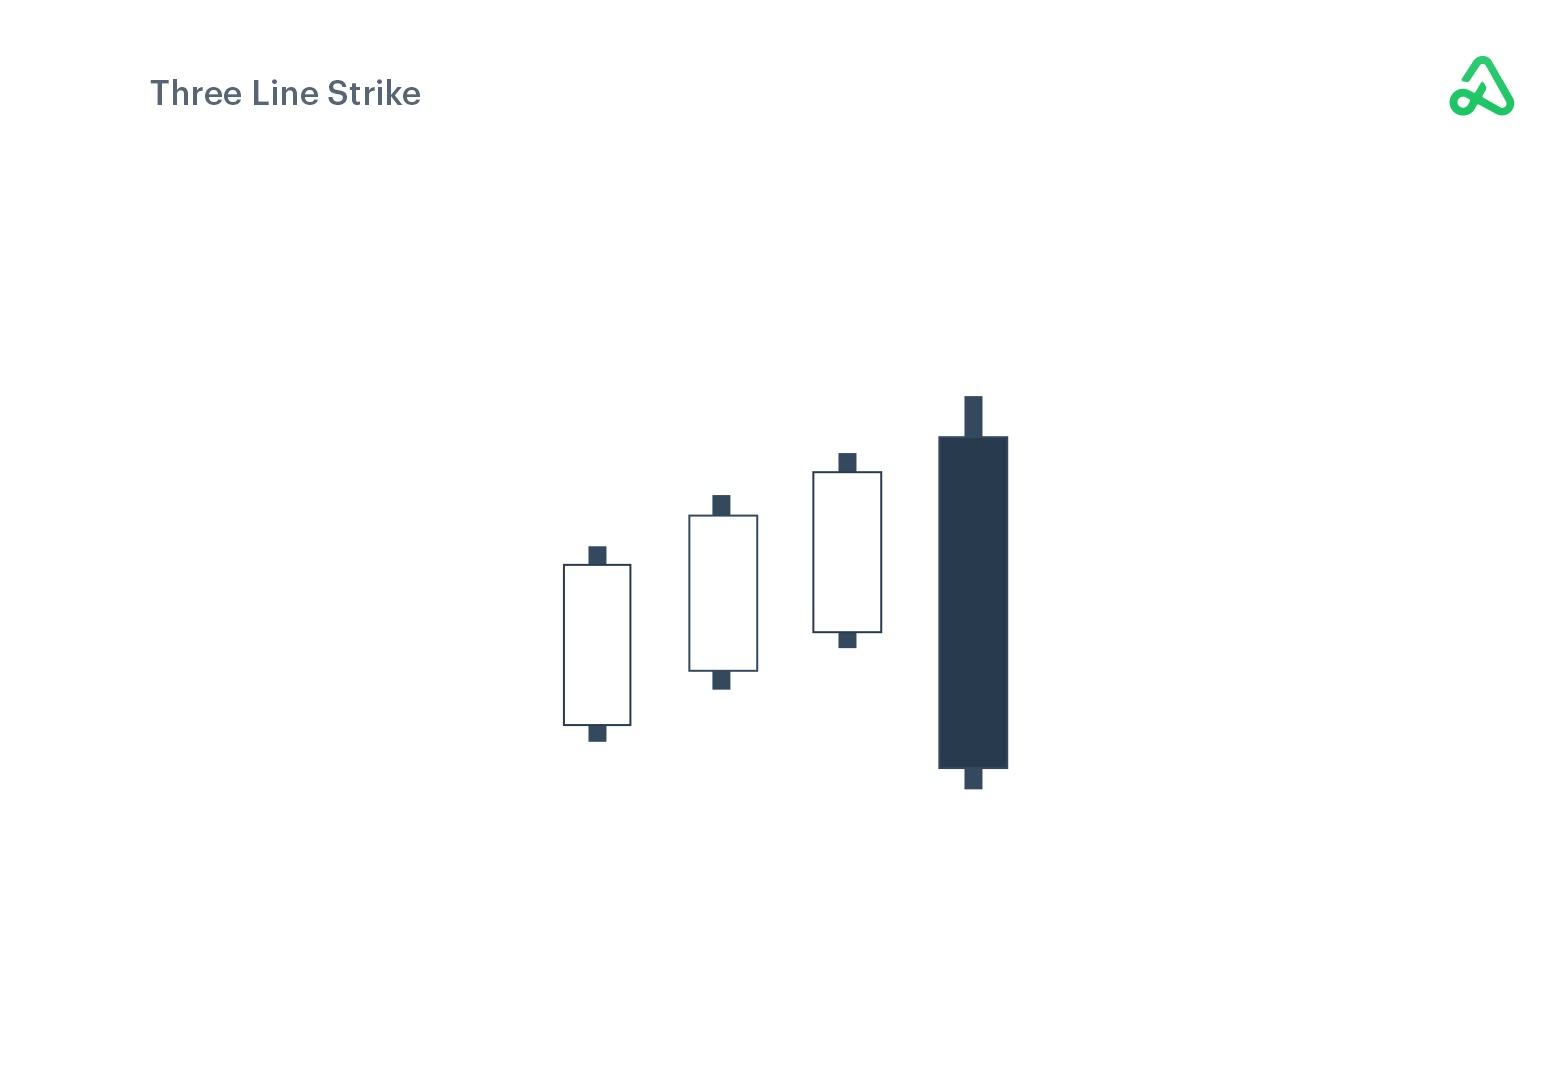 Bullish Three Line Strike example image